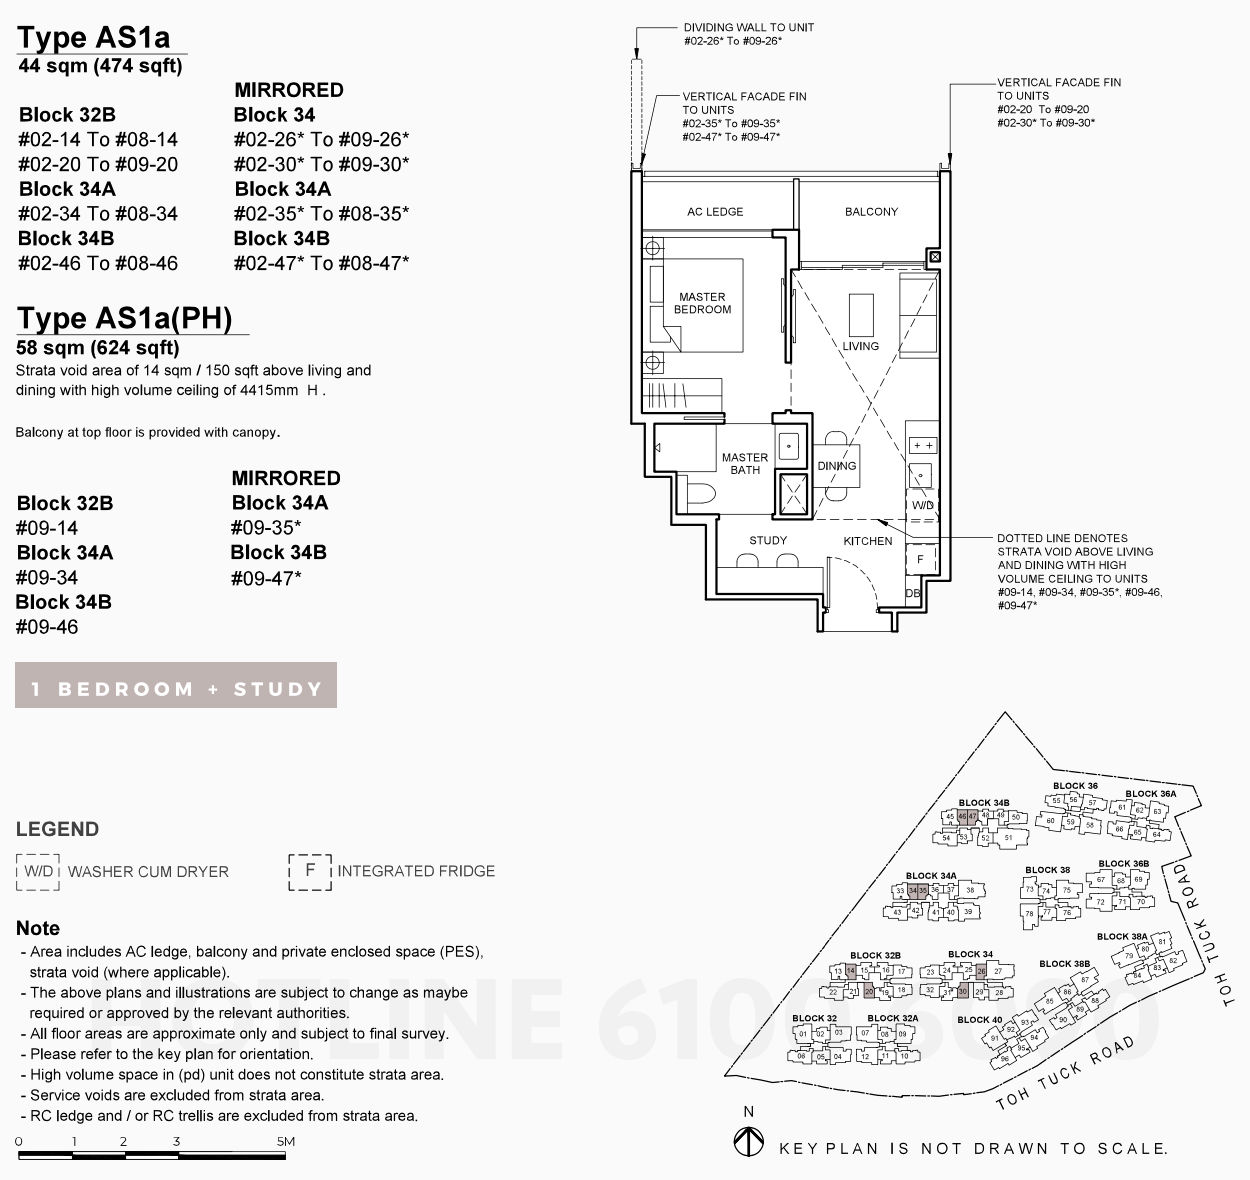 Forett Floor Plan . One Bedroom Study Type AS1a